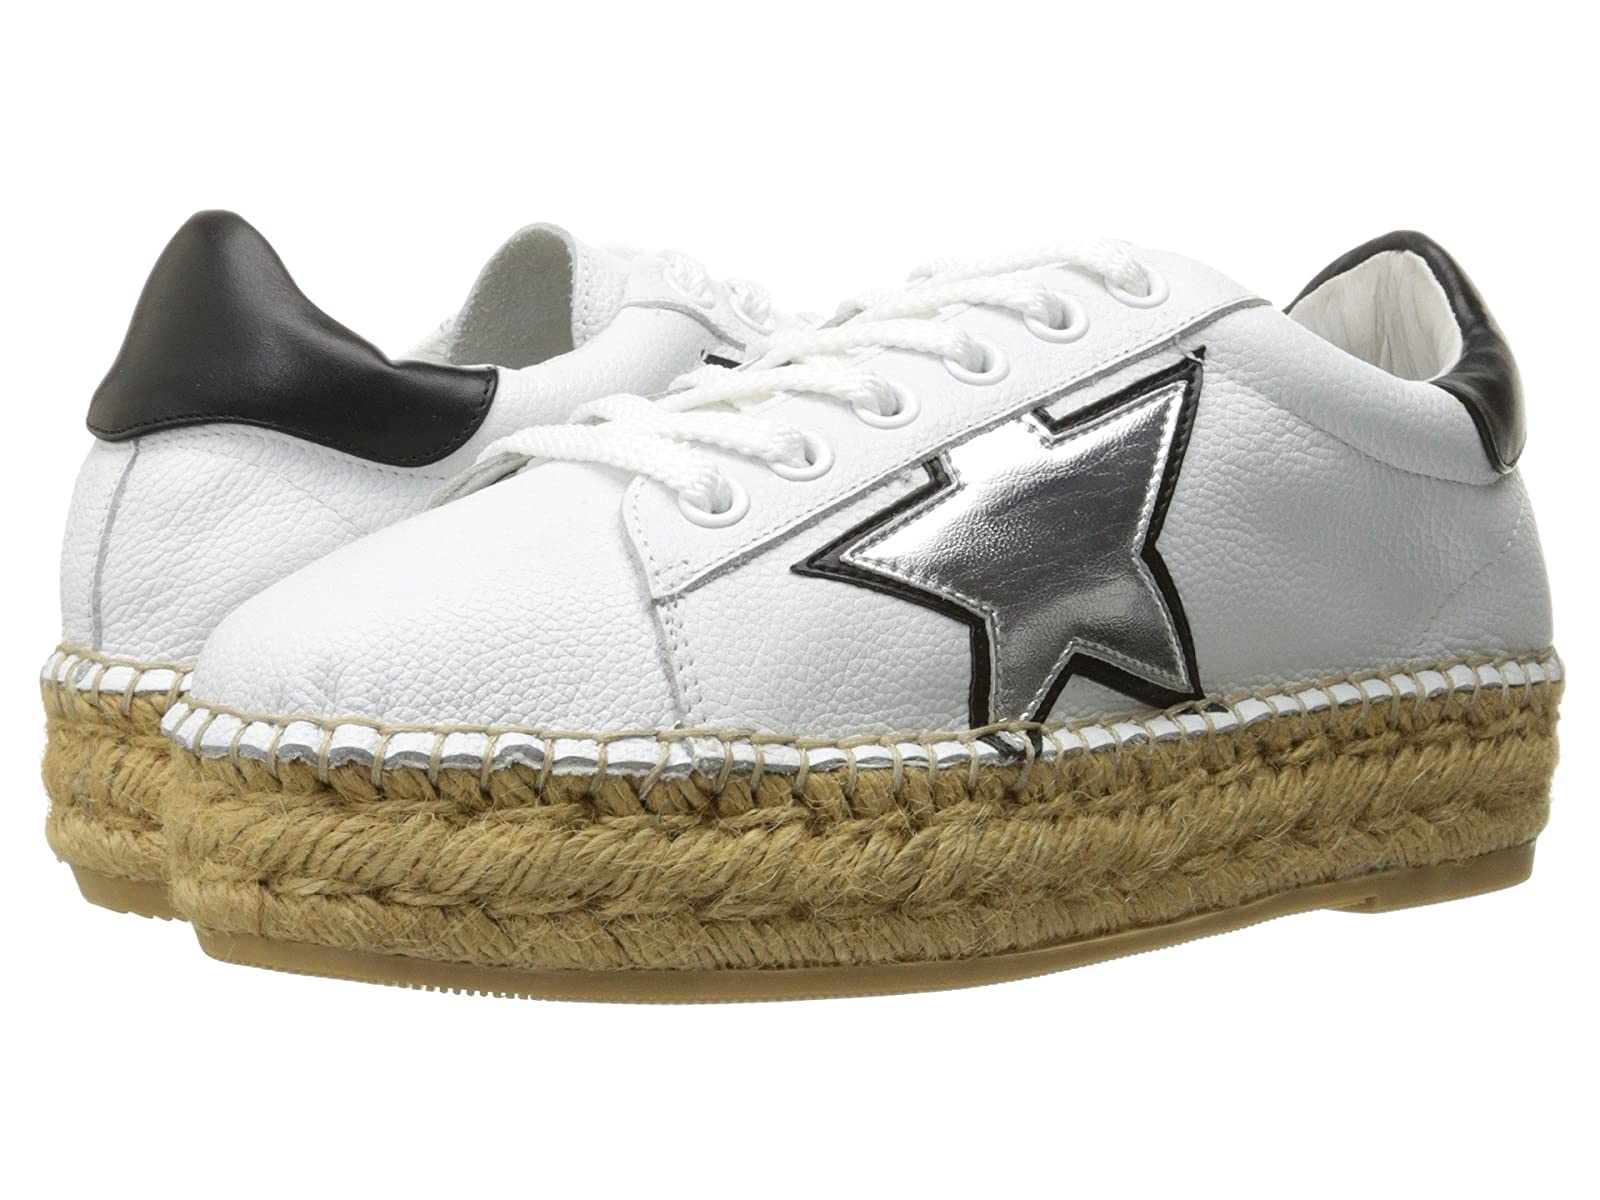 Steven PhaseCheap and distinctive eye-catching shoes